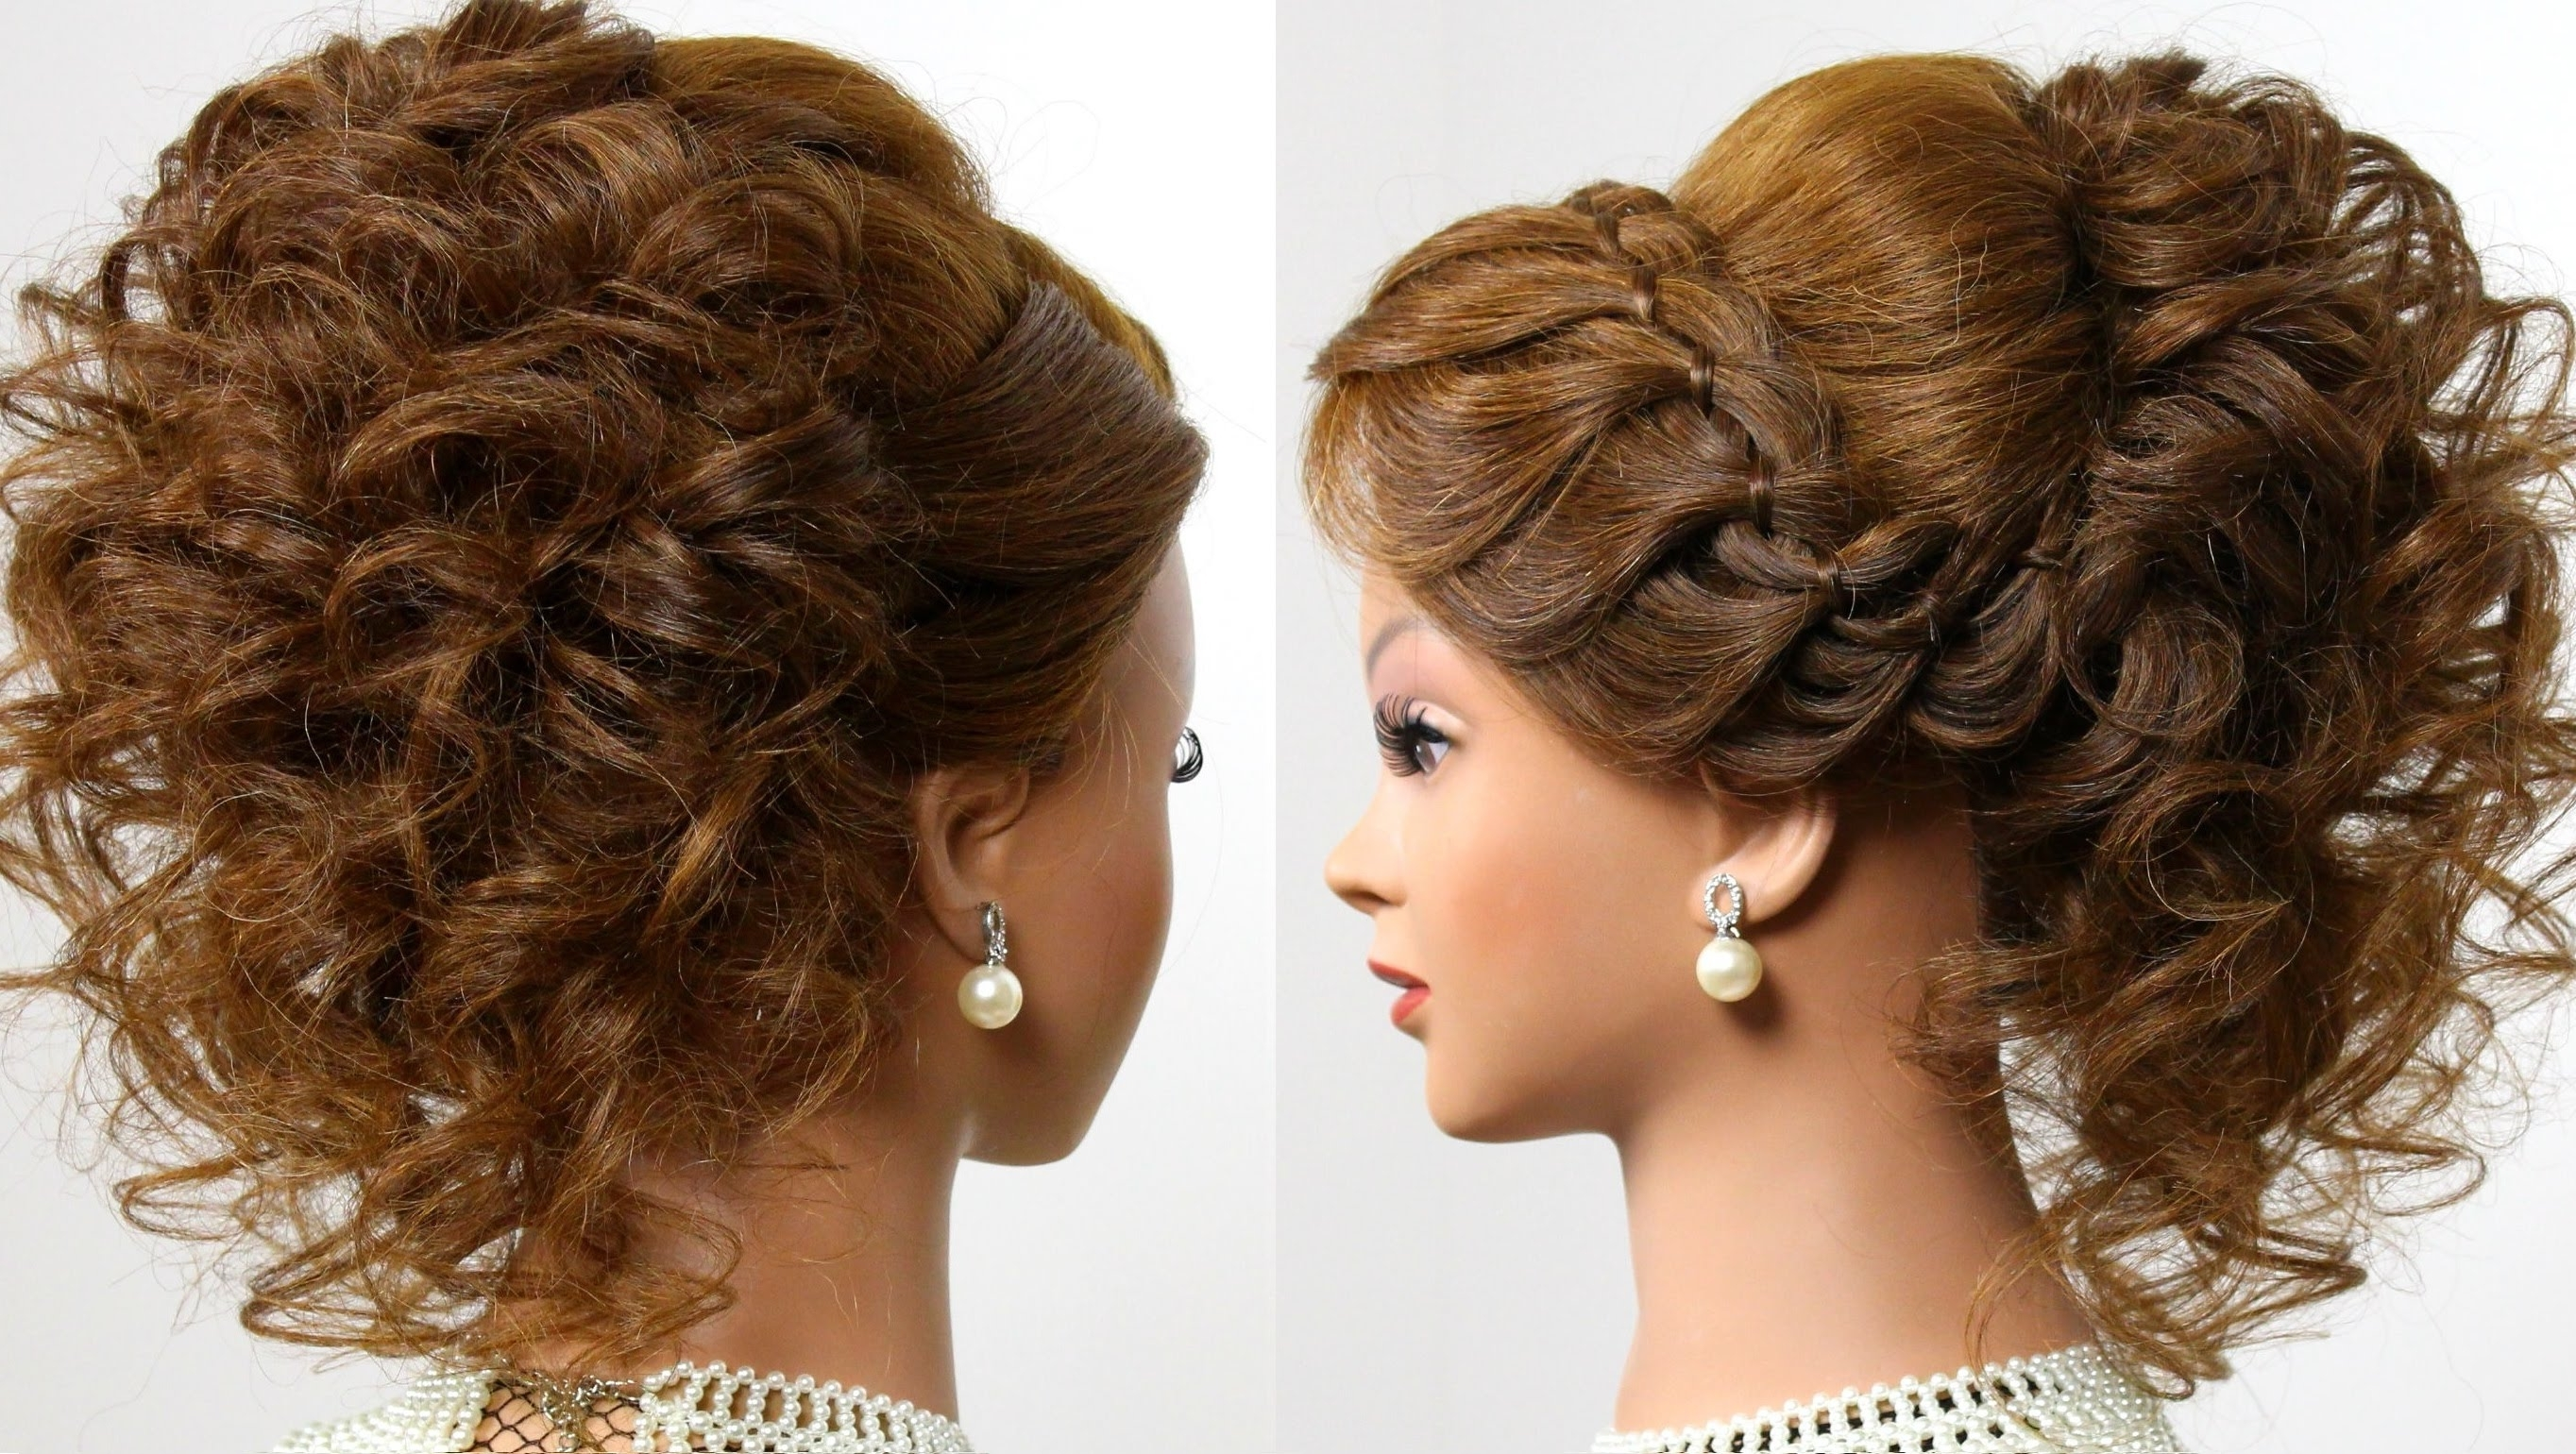 Beautiful Easy Wedding Hairstyles For Short Hair Photos – Styles With Bridesmaid Hairstyles Updos For Short Hair (View 4 of 15)